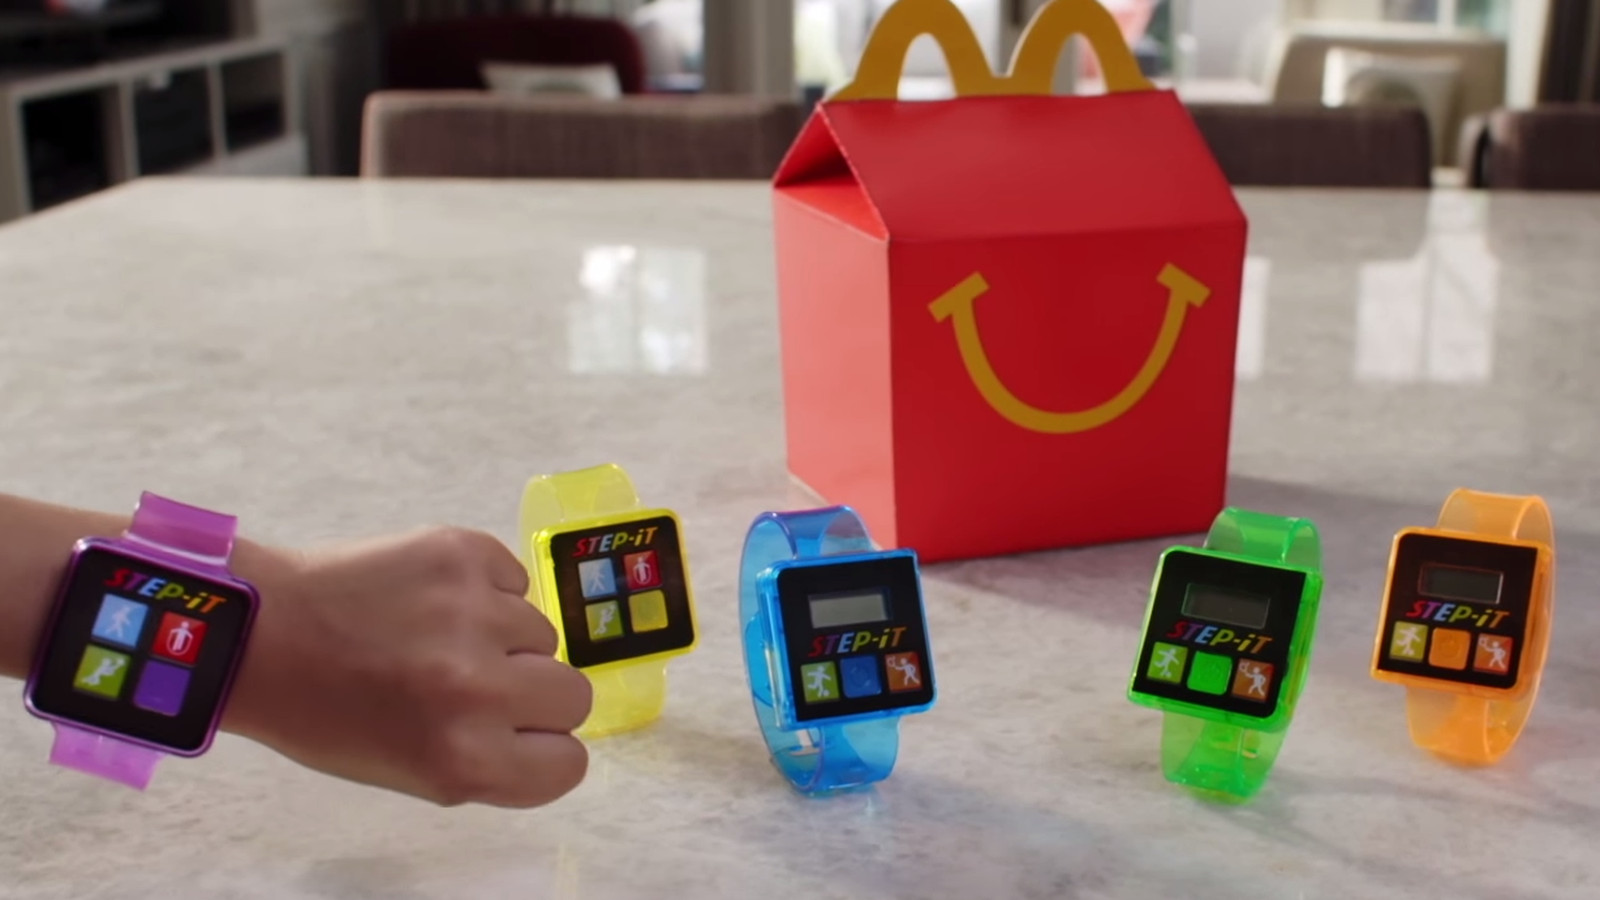 mcdonald u0026 39 s gives up on fitness tracker happy meals after